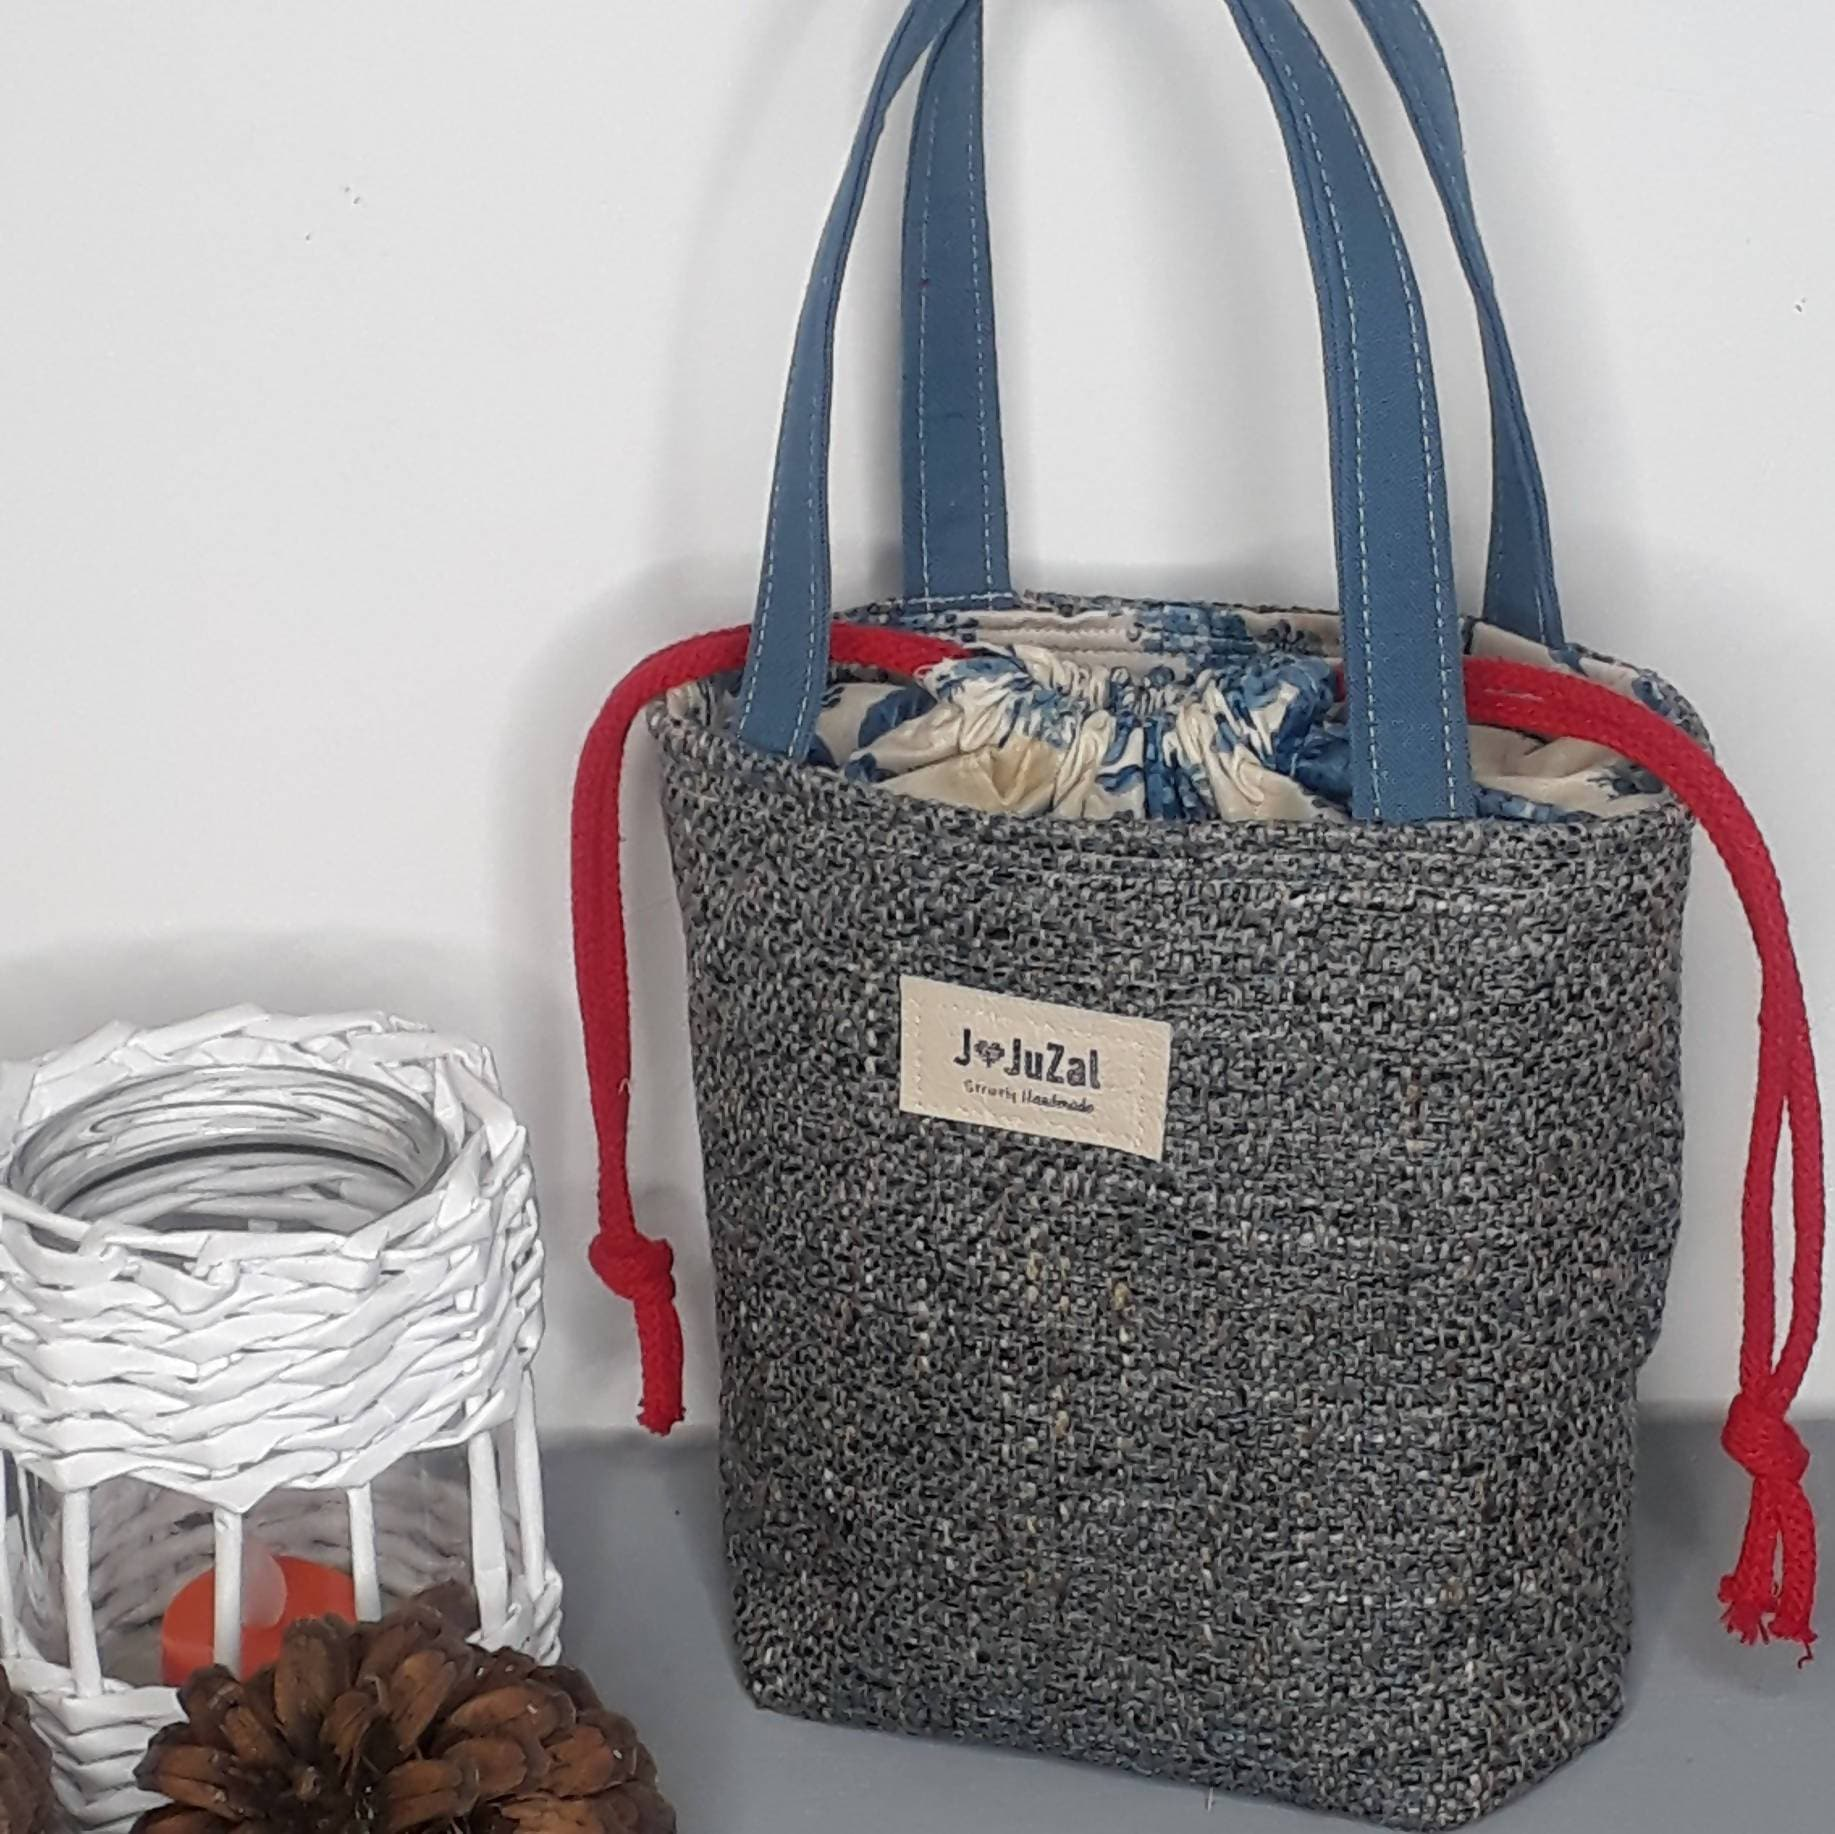 Upcycled Eco Friendly Drawstring Lunch Bag - Blue/Beige/Red